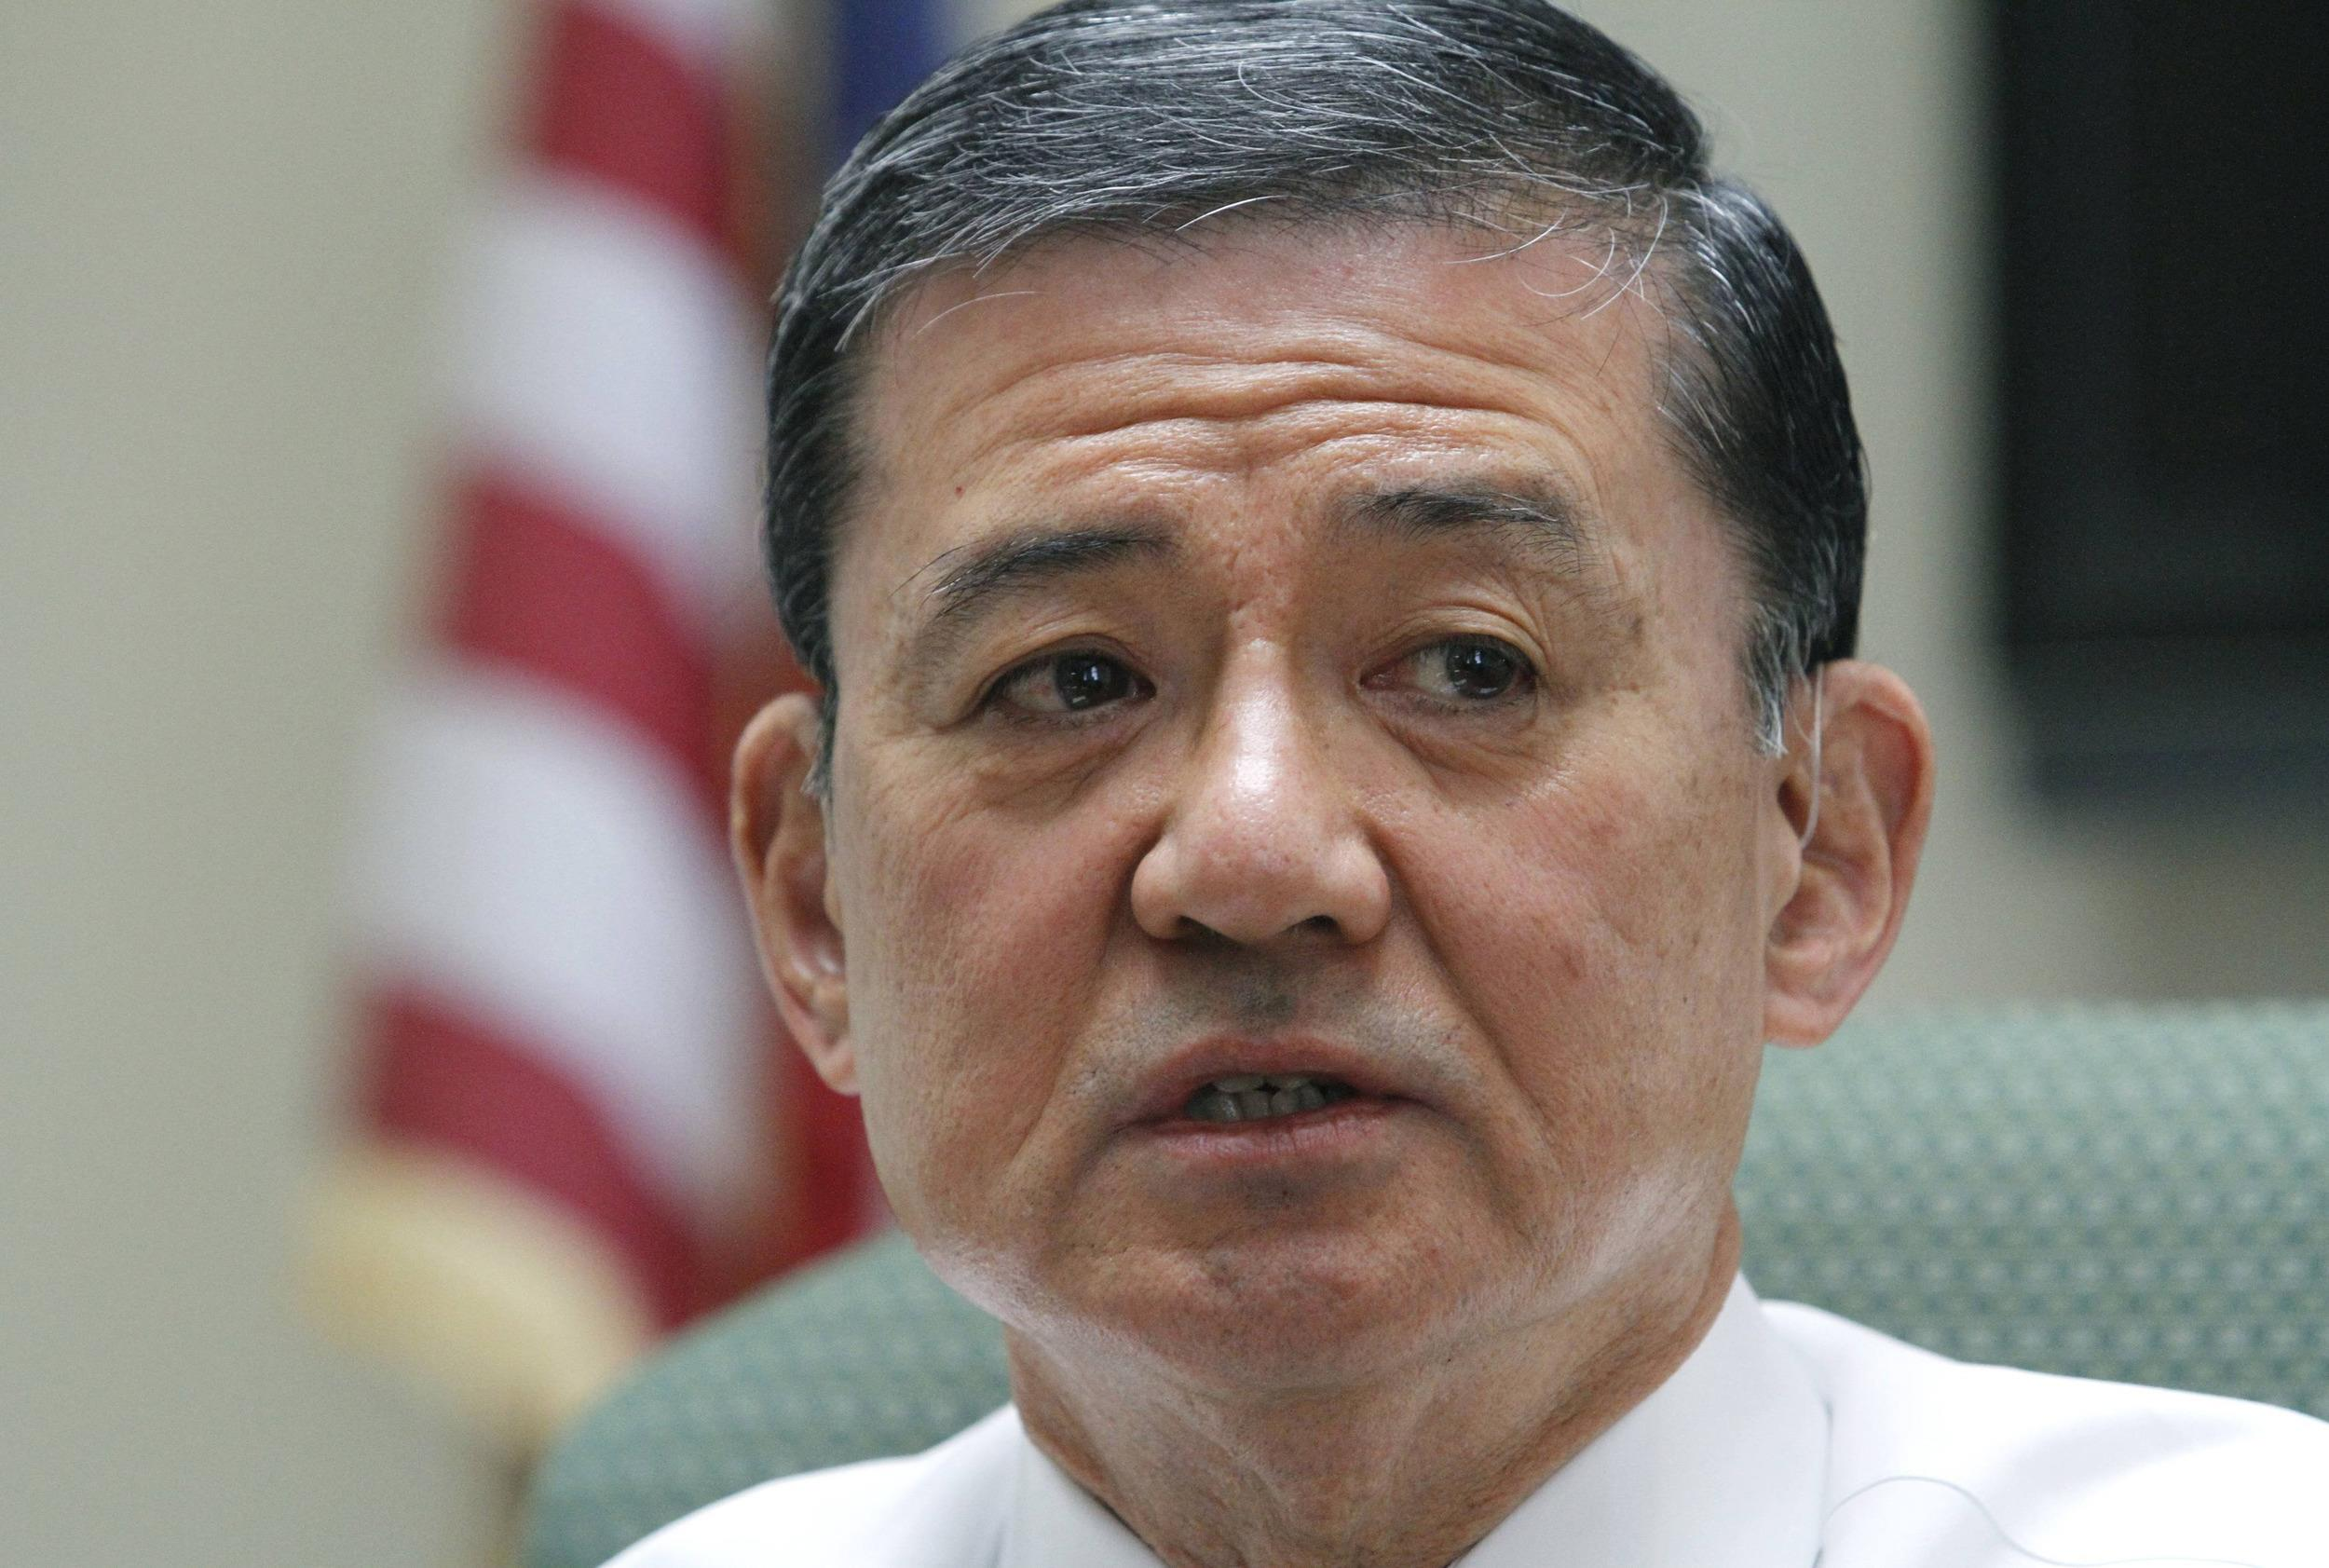 Image: File photo of U.S. Veterans Affairs Secretary Shinseki speaking during a visit to the VA Medical Center in Coatesville